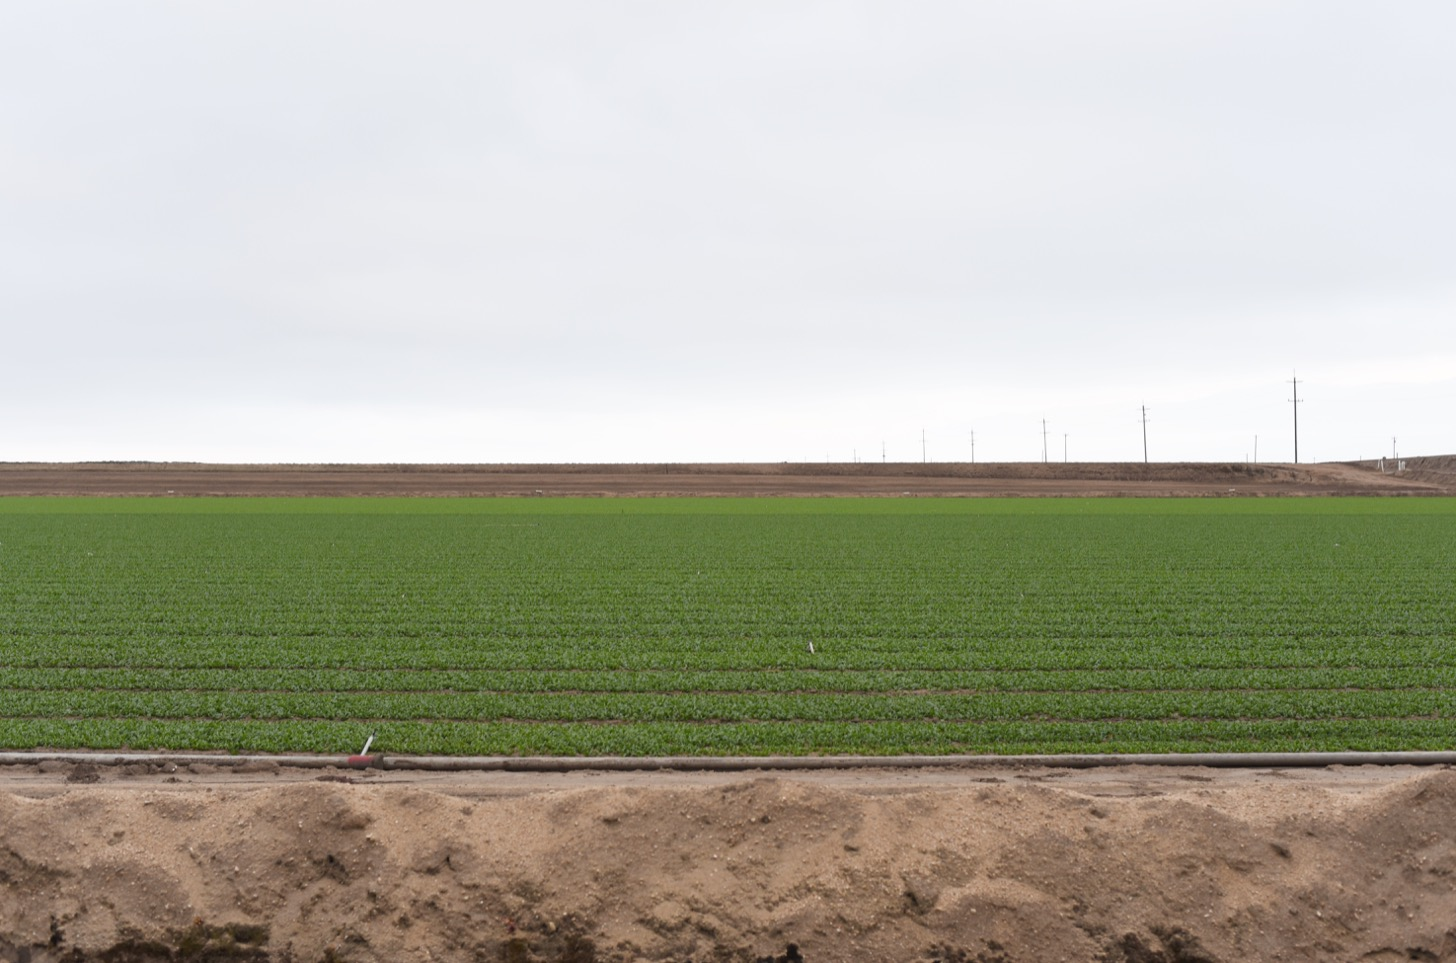 Fields in Salinas.